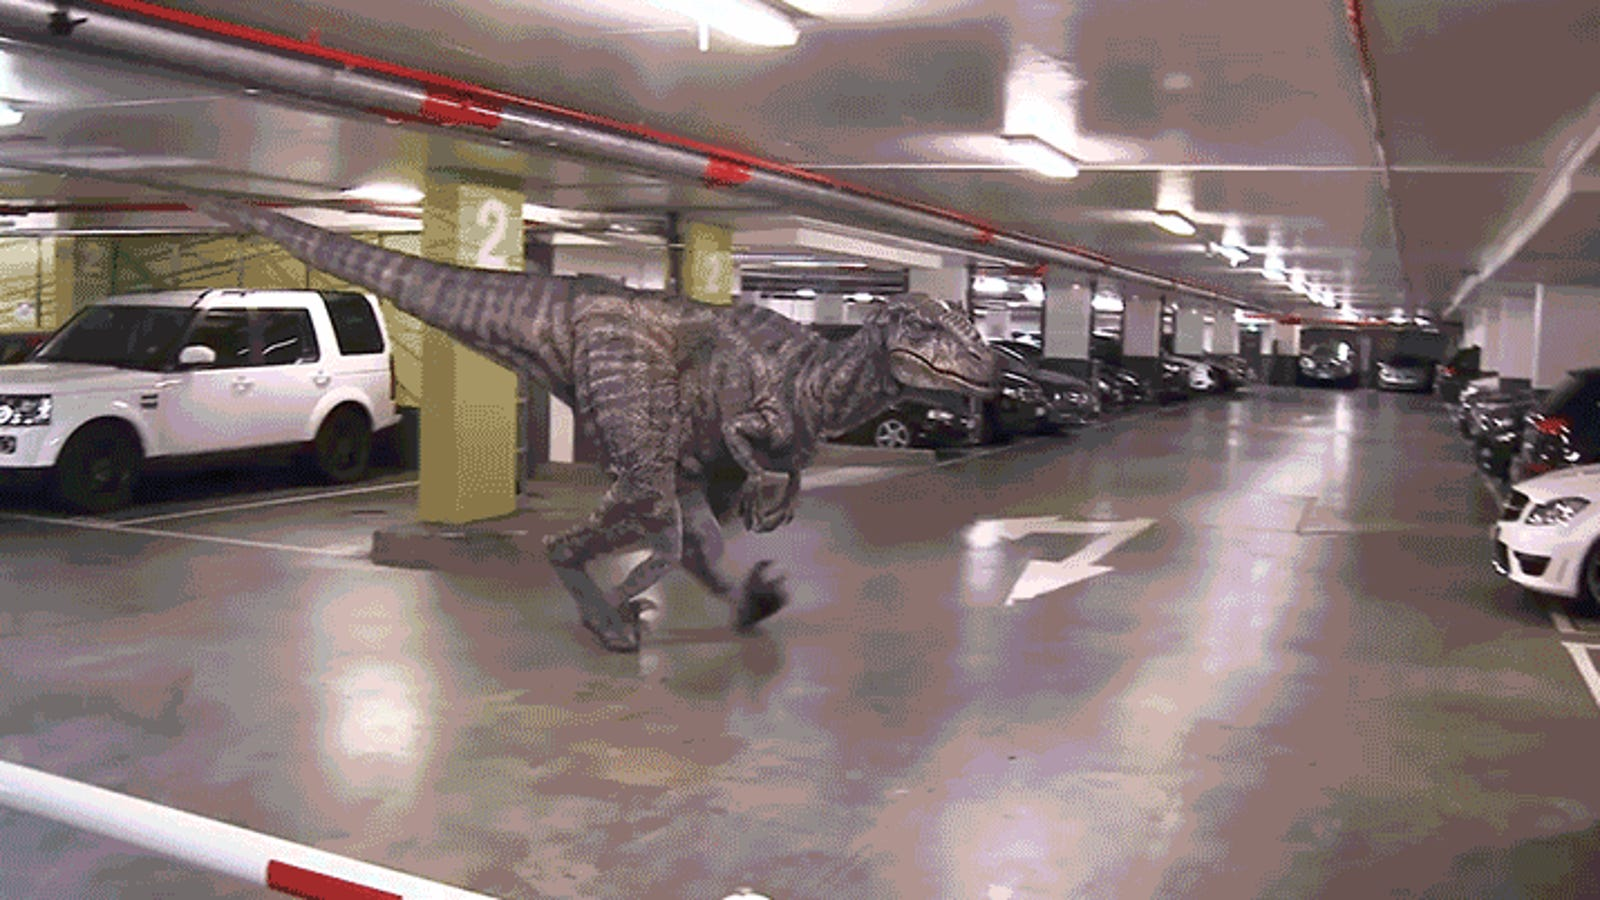 Being Pranked With a Lifelike Robot Dinosaur Must Be Terrifying